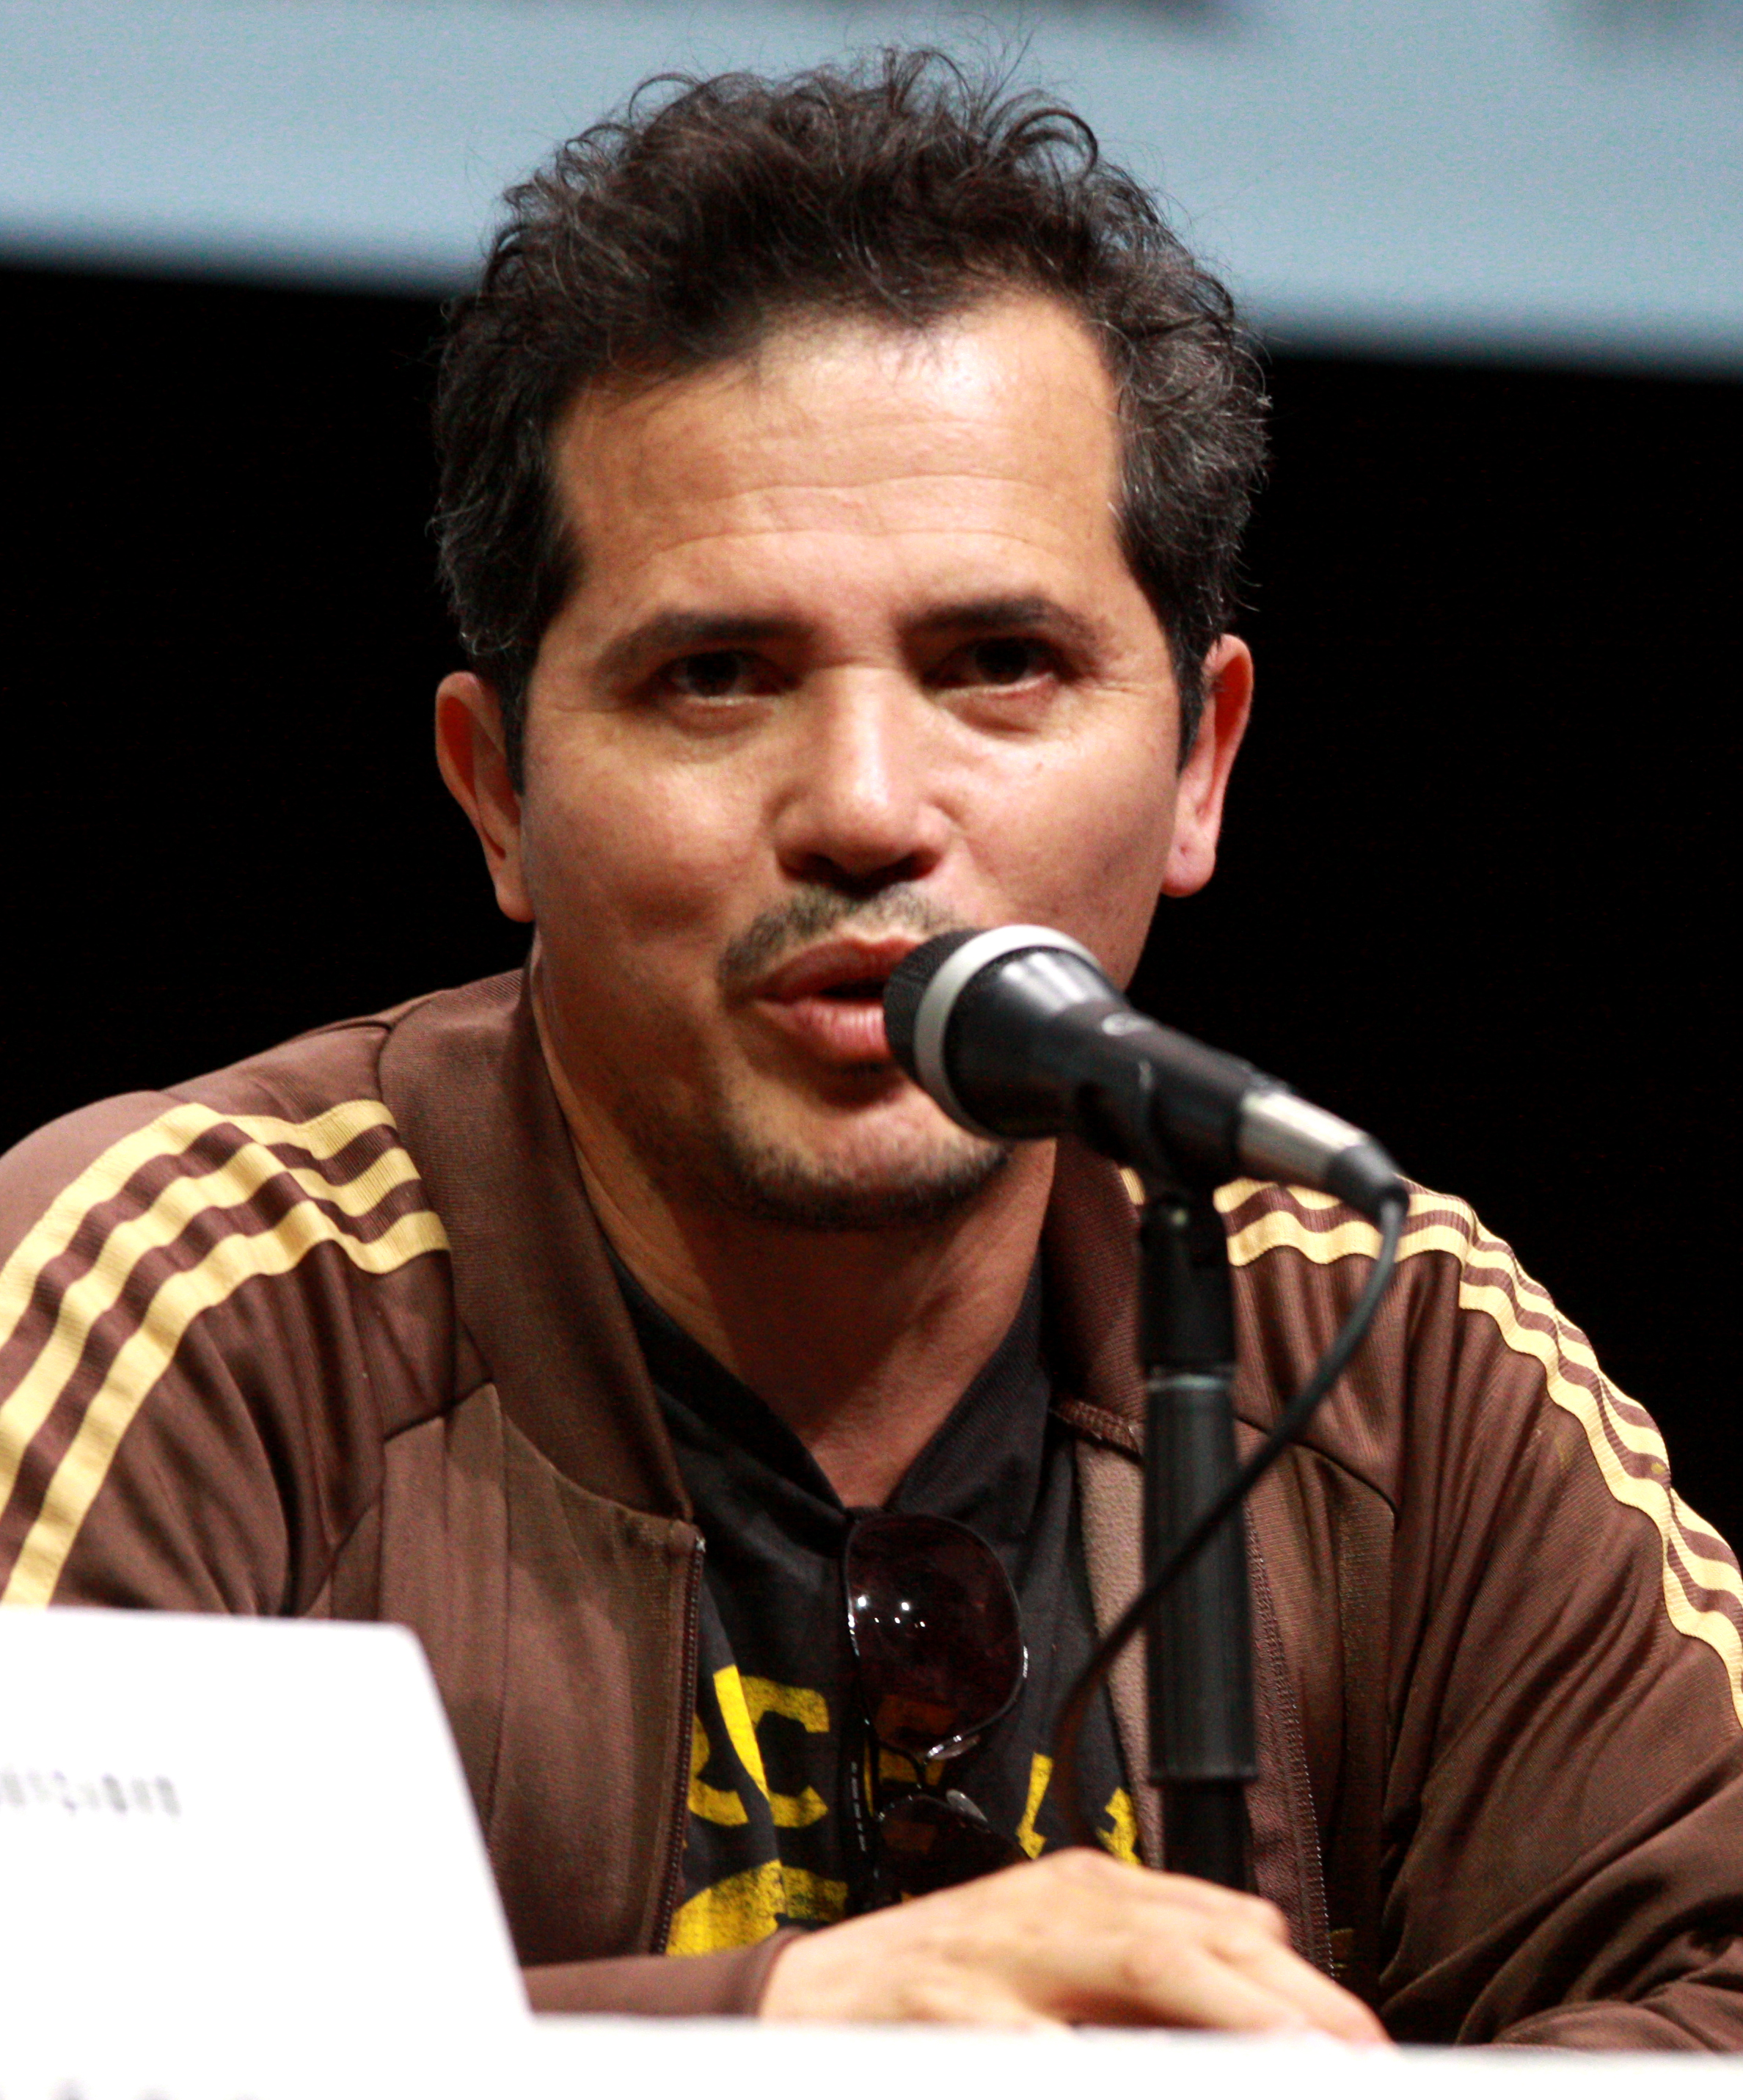 john leguizamo photojohn leguizamo john wick 2, john leguizamo carlito's way, john leguizamo height, john leguizamo song, john leguizamo kickass, john leguizamo empire, john leguizamo stand up, john leguizamo insta, john leguizamo benny blanco, john leguizamo miami vice, john leguizamo movies, john leguizamo net worth, john leguizamo celebheights, john leguizamo photo, john leguizamo american ultra, john leguizamo фильмы, john leguizamo tybalt, john leguizamo romeo and juliet, john leguizamo twitter, john leguizamo on steven seagal